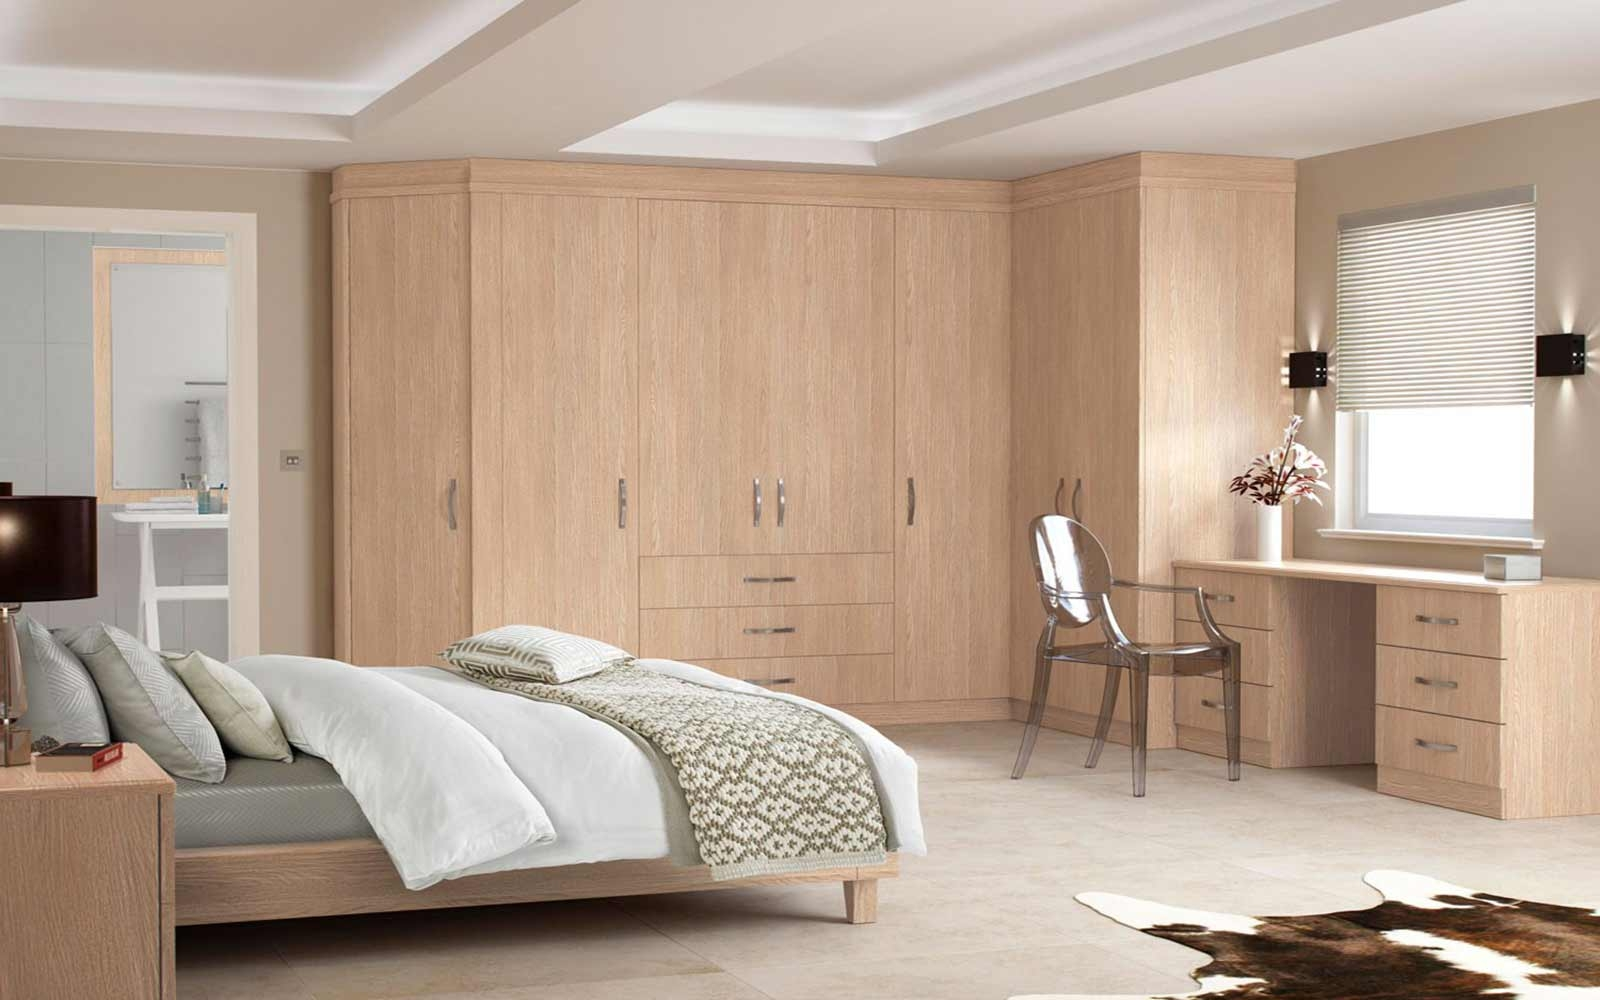 Bedroom Bespoke Built In Fitted Wardrobe Mirrored Dark Wood Throughout Solid Wood Fitted Wardrobes (View 15 of 15)